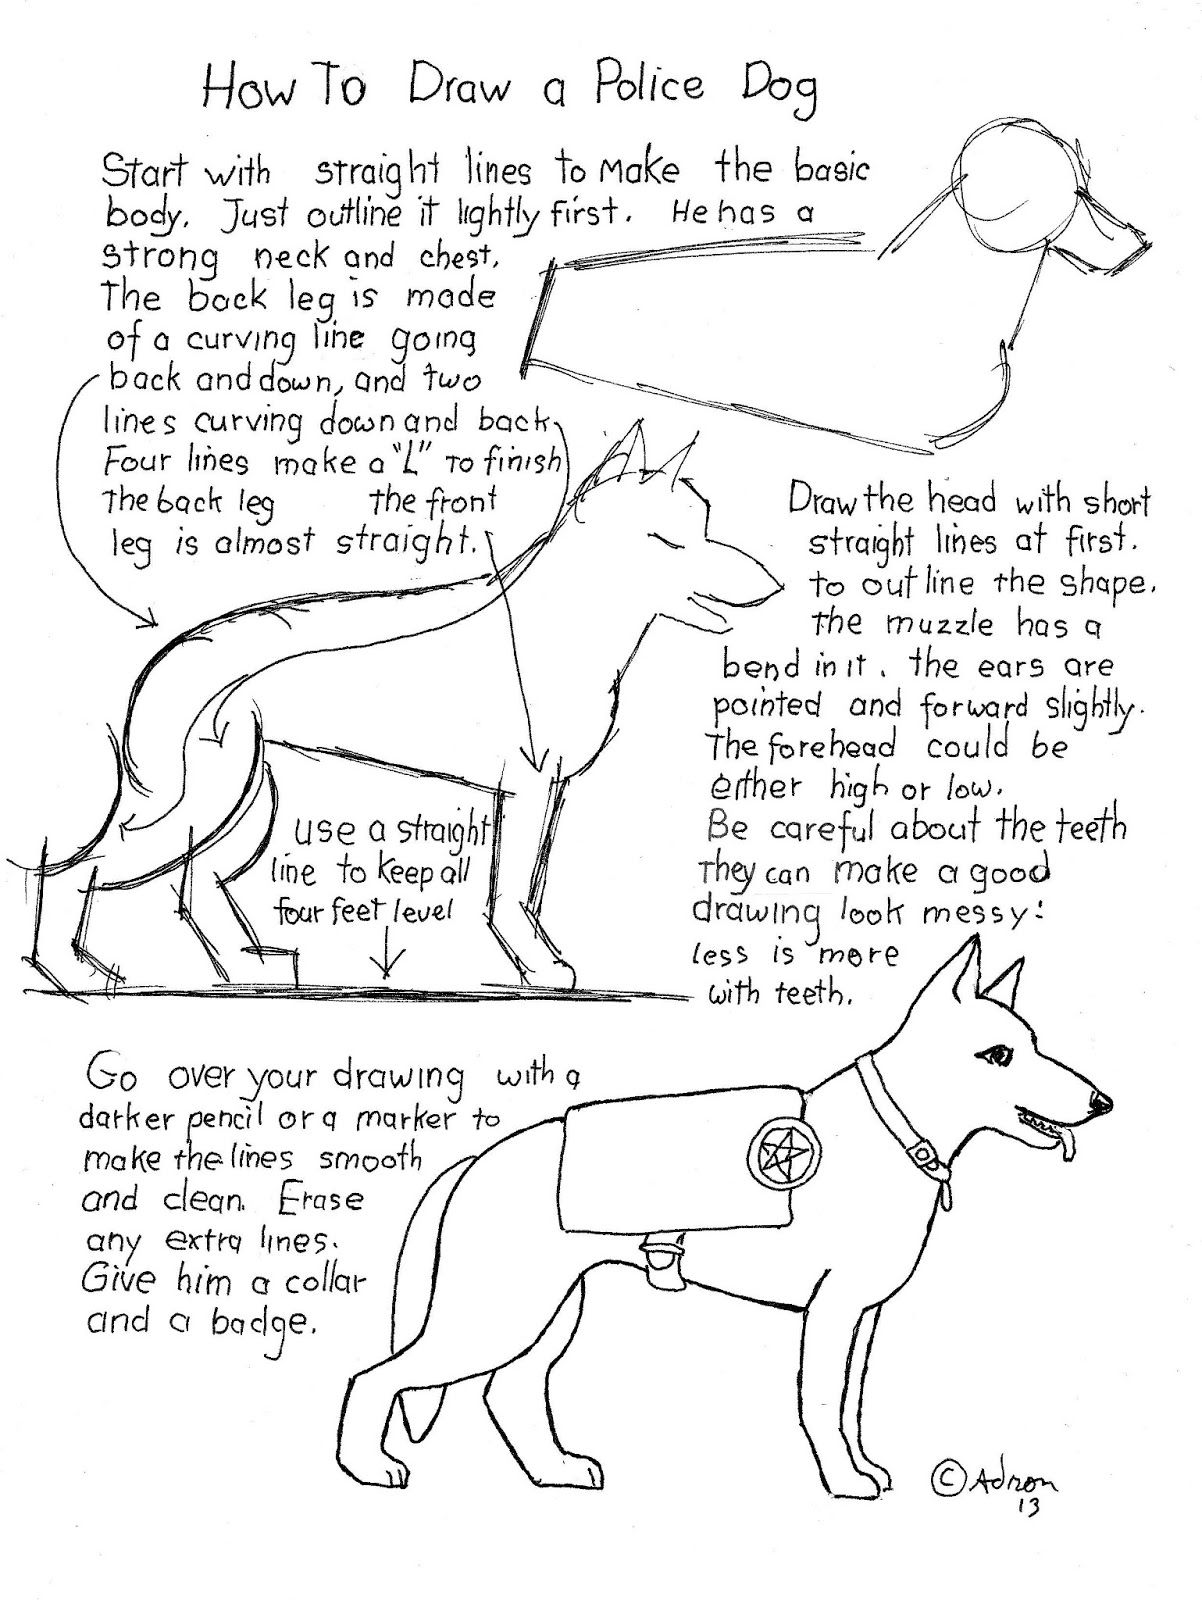 How To Draw A Police Dog Worksheet